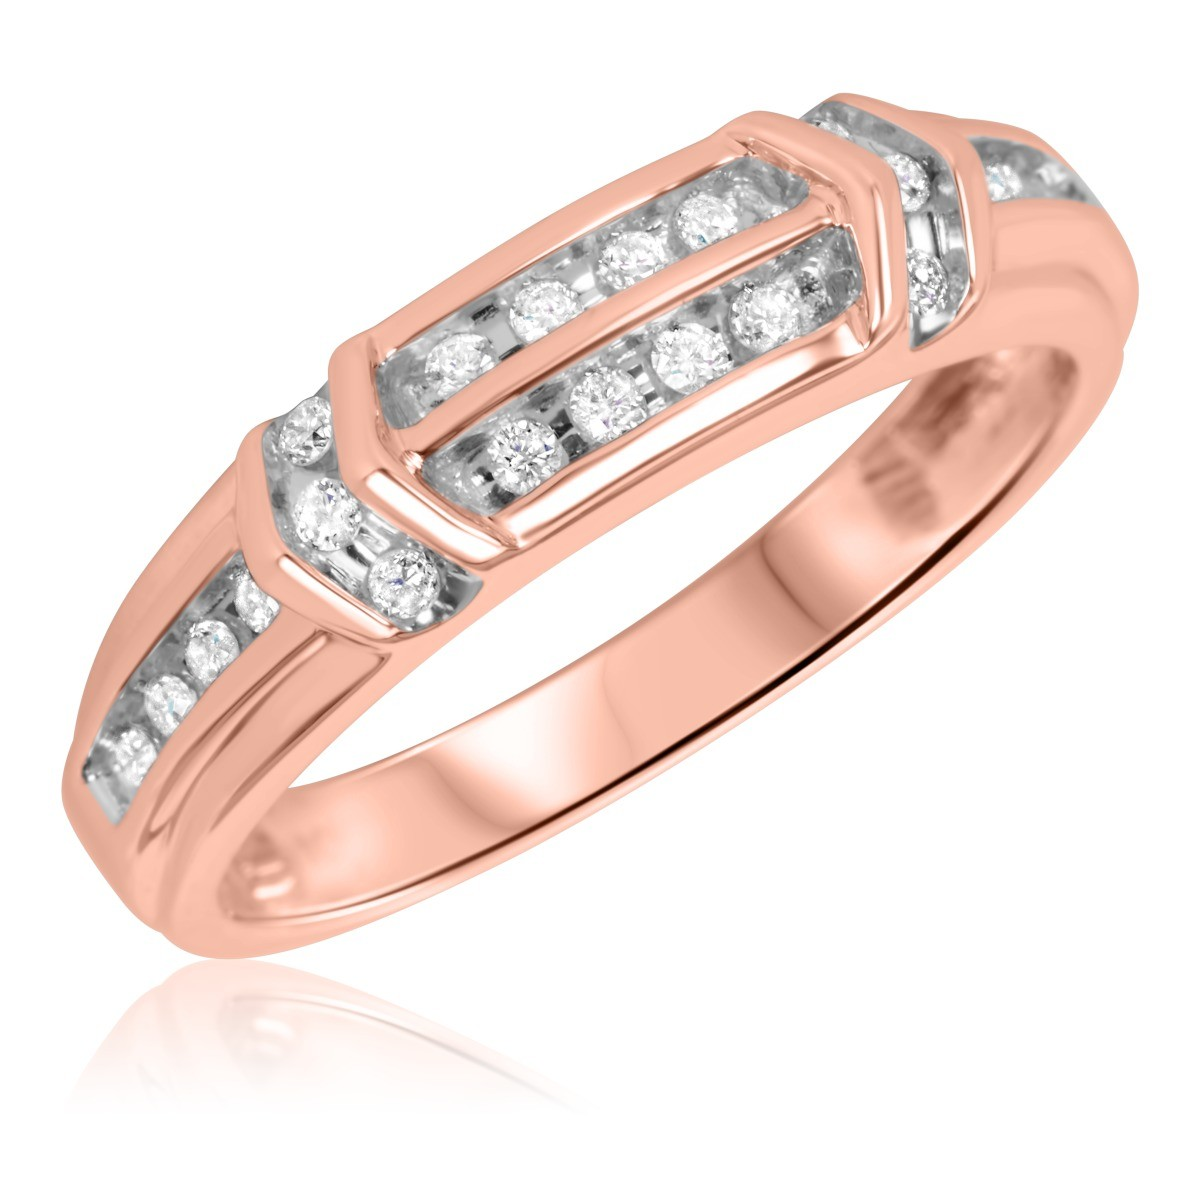 1/3 Carat T.W. Diamond Men's Wedding Ring 10K Rose Gold